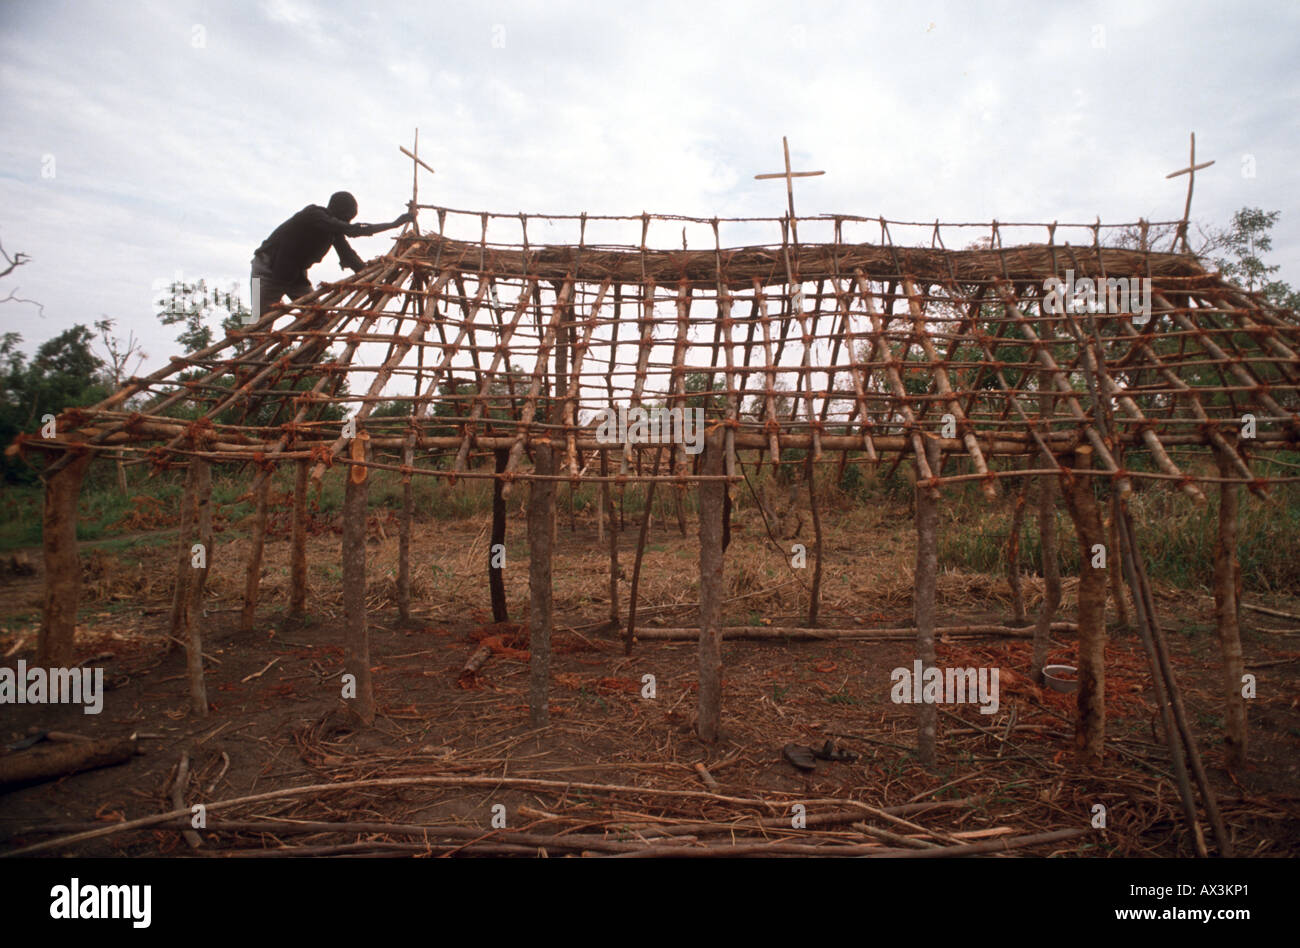 Sudanese Rebels build a Christian Church in Southern Kordofern, Southern Sudan. - Stock Image